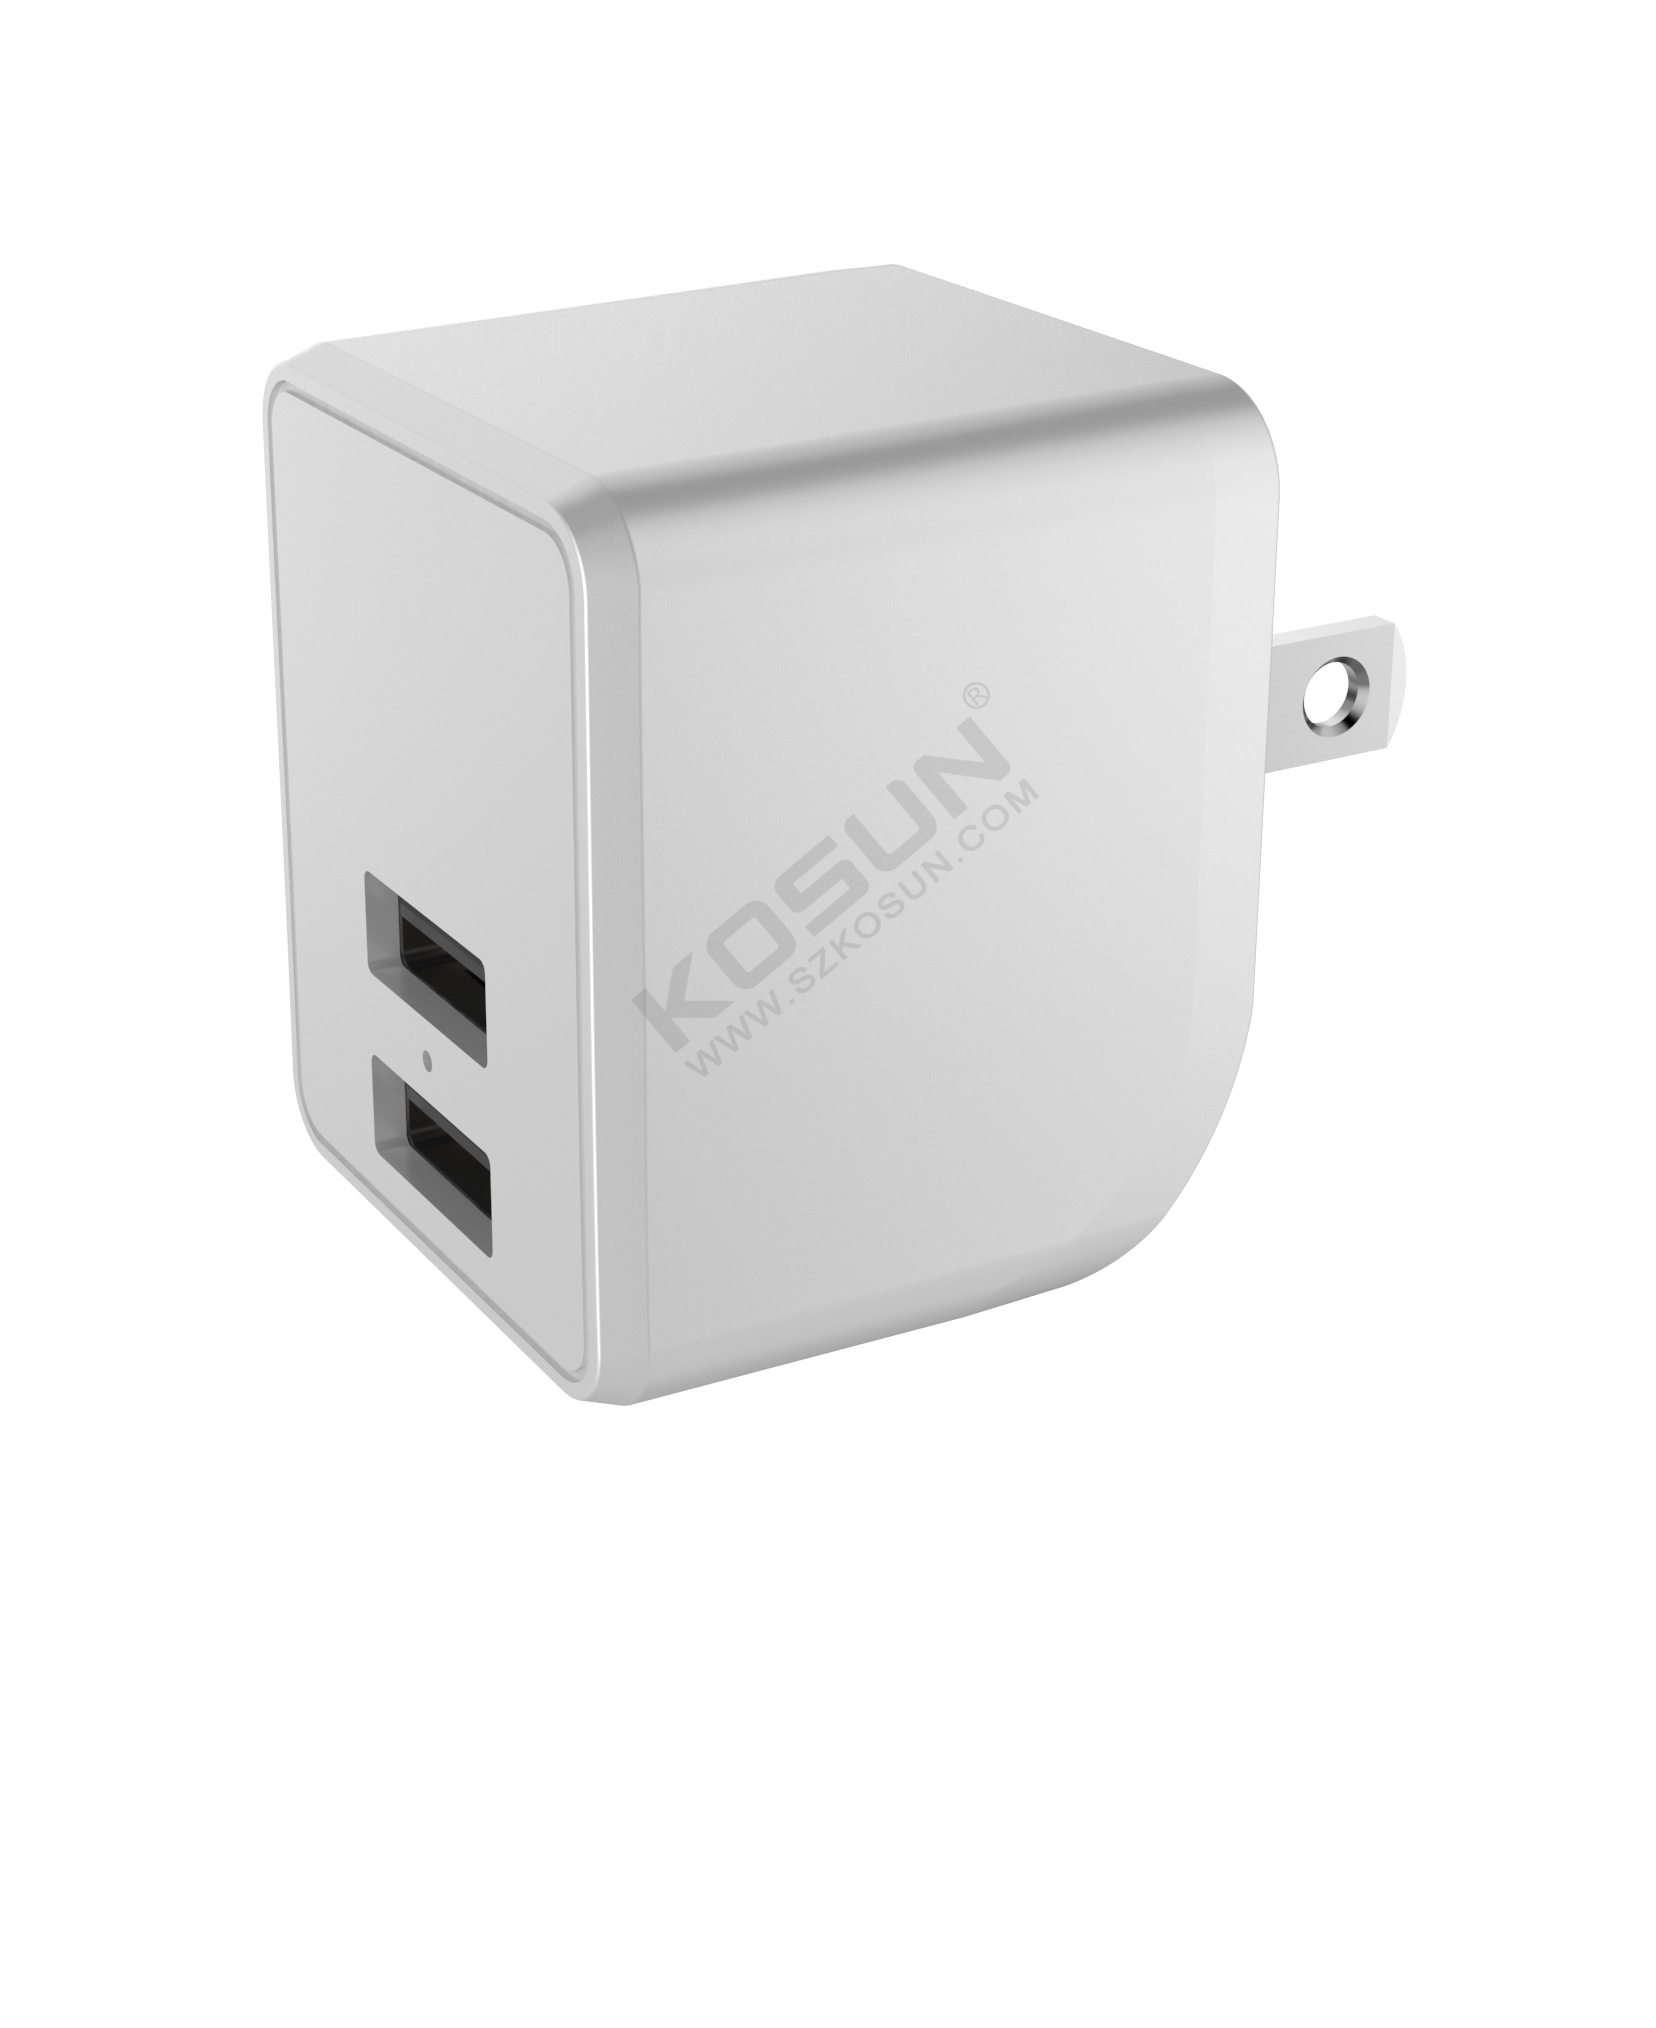 5V/2.4A Dual USB Foldable Prong Wall Charger